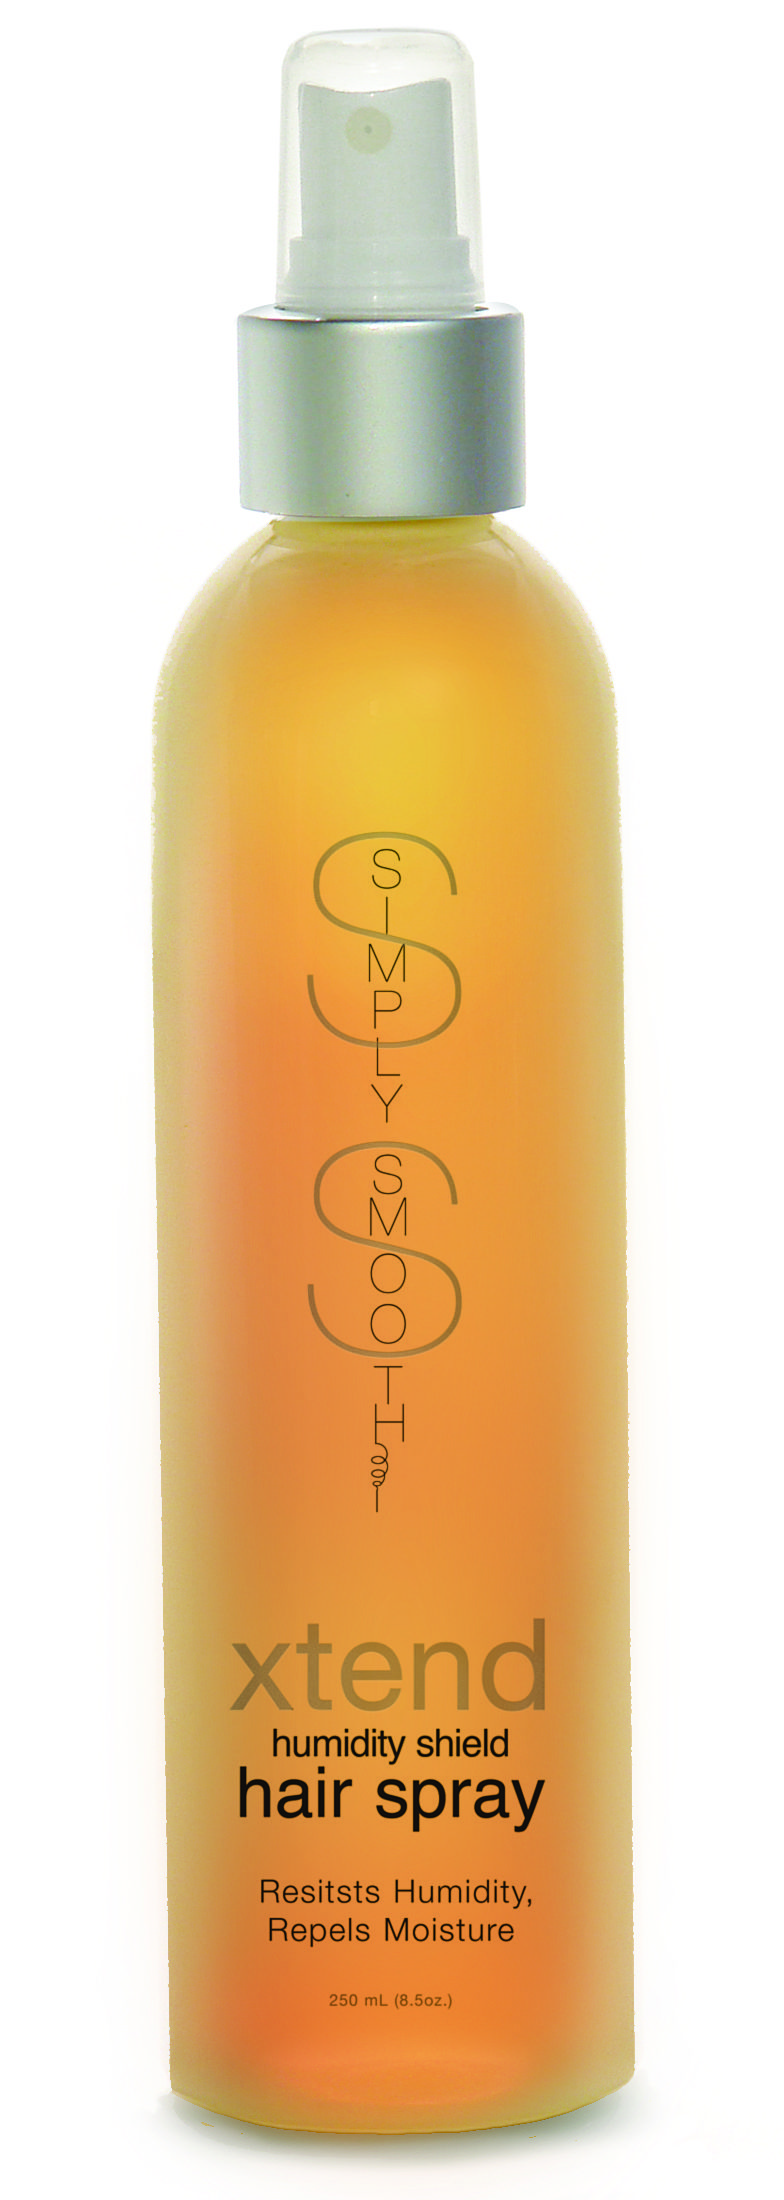 Simply Smooth xtend humidity shield hairspray is botanically blended, keratin infused, non-aerosol hair spray. Light weight, non-flaking spray resists humidity, repels moisture, and leaves hair touchable.